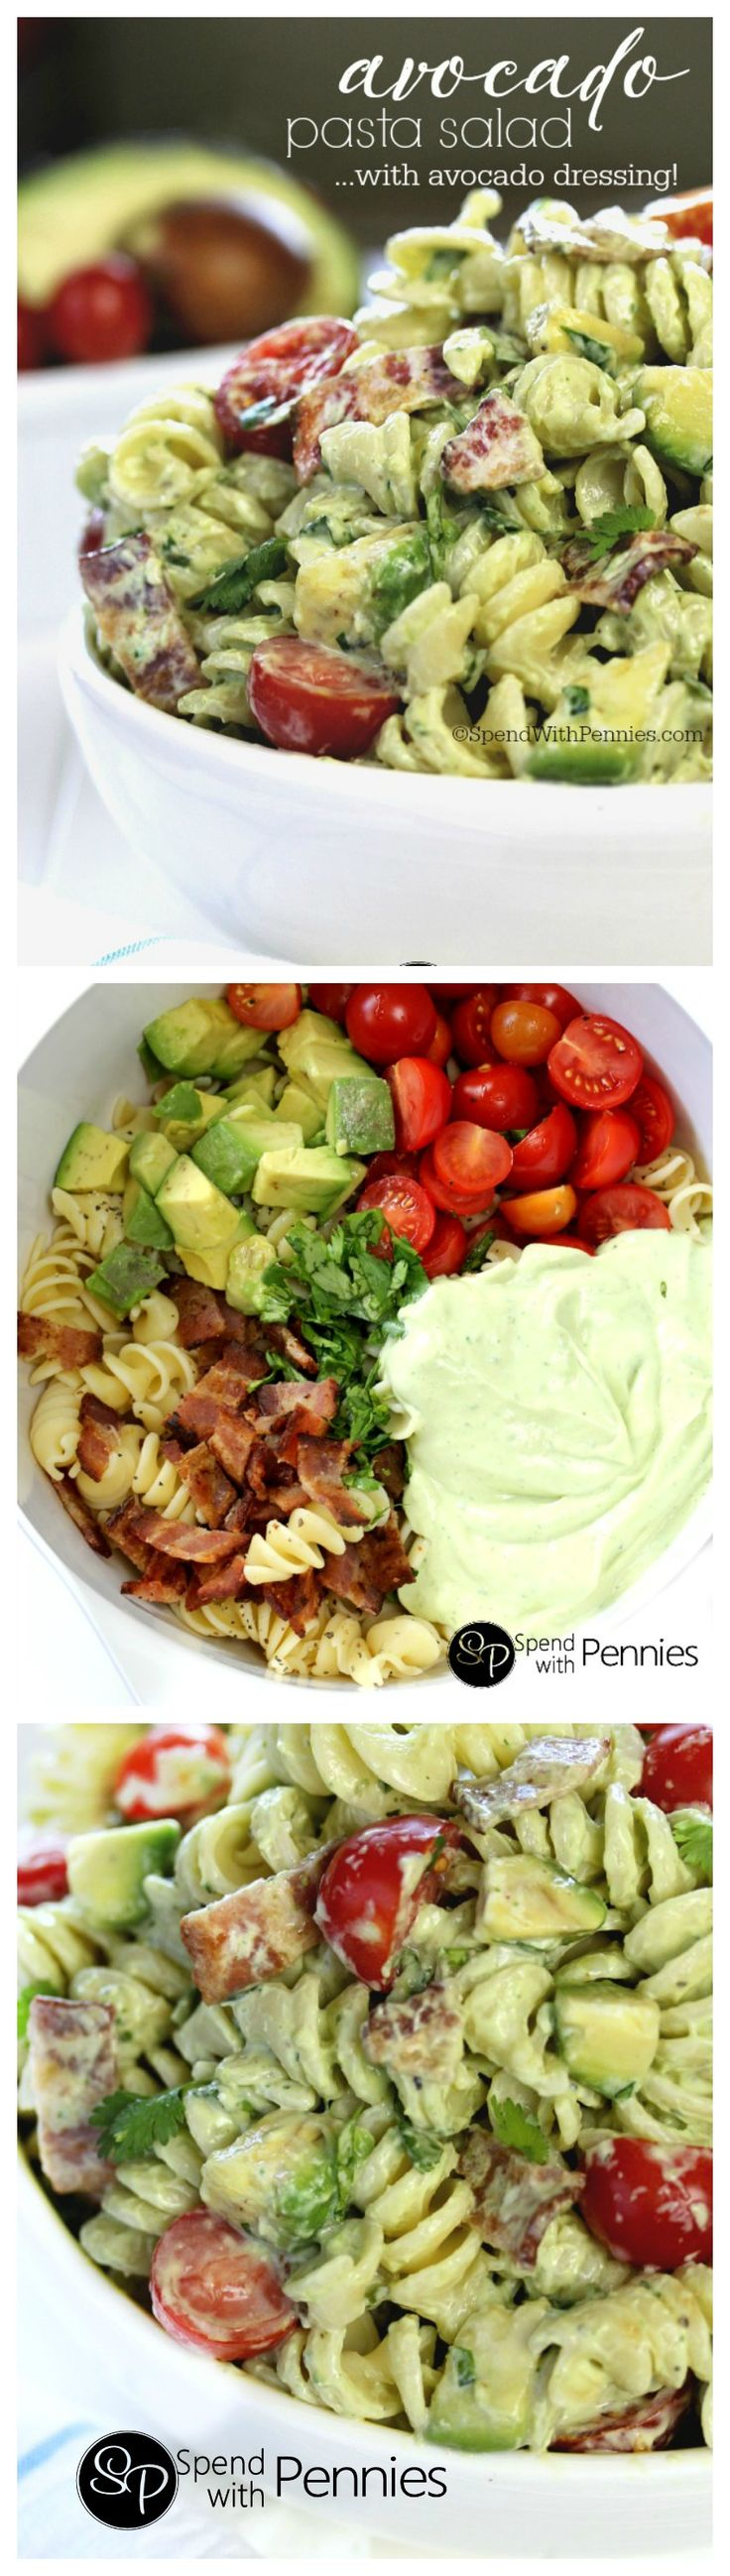 Avocado Pasta Salad with Avocado Dressing - Cold pasta salads are the perfect & satisfying quick dinner or lunch! This delicious pasta salad recipe is loaded with avocados, crispy bacon & juicy cherry tomatoes tossed in a homemade avocado dressing!